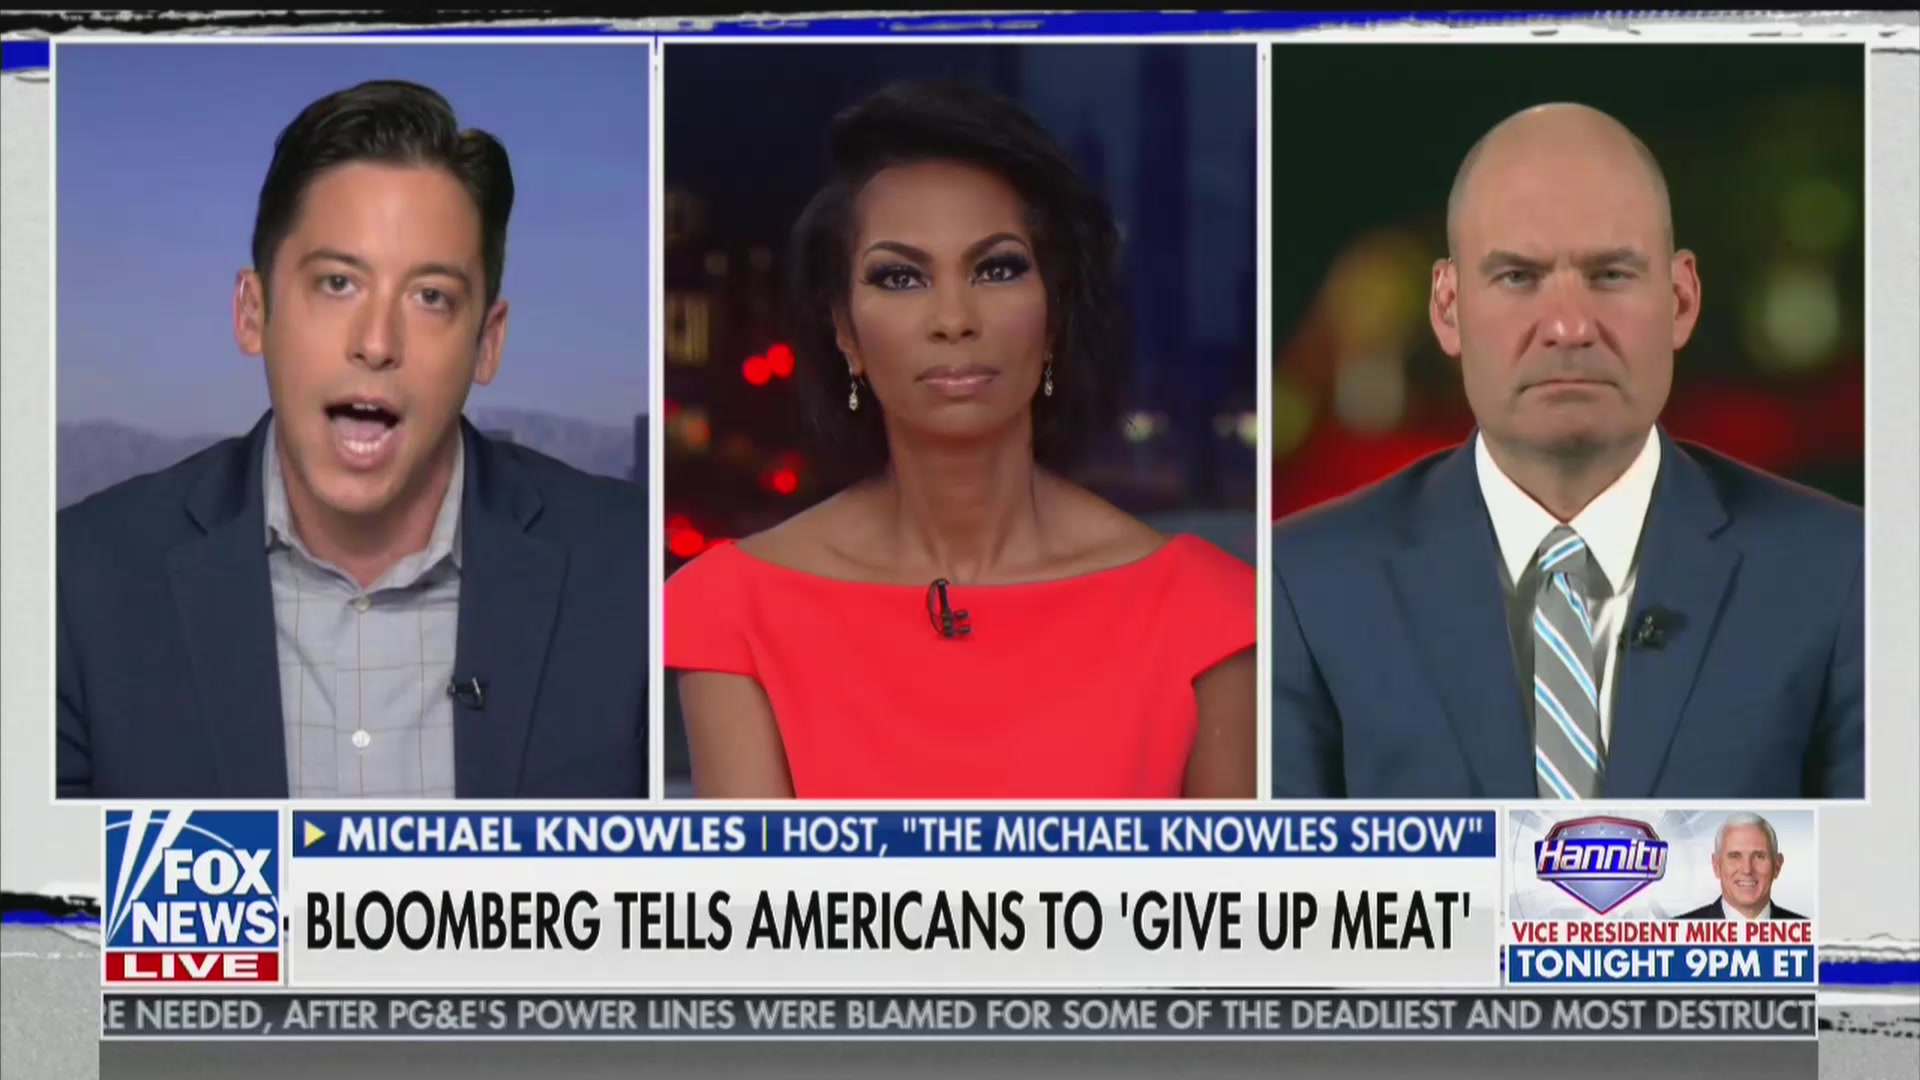 Fox News Guest Michael Knowles Calls Greta Thunberg a 'Mentally Ill Swedish Child'